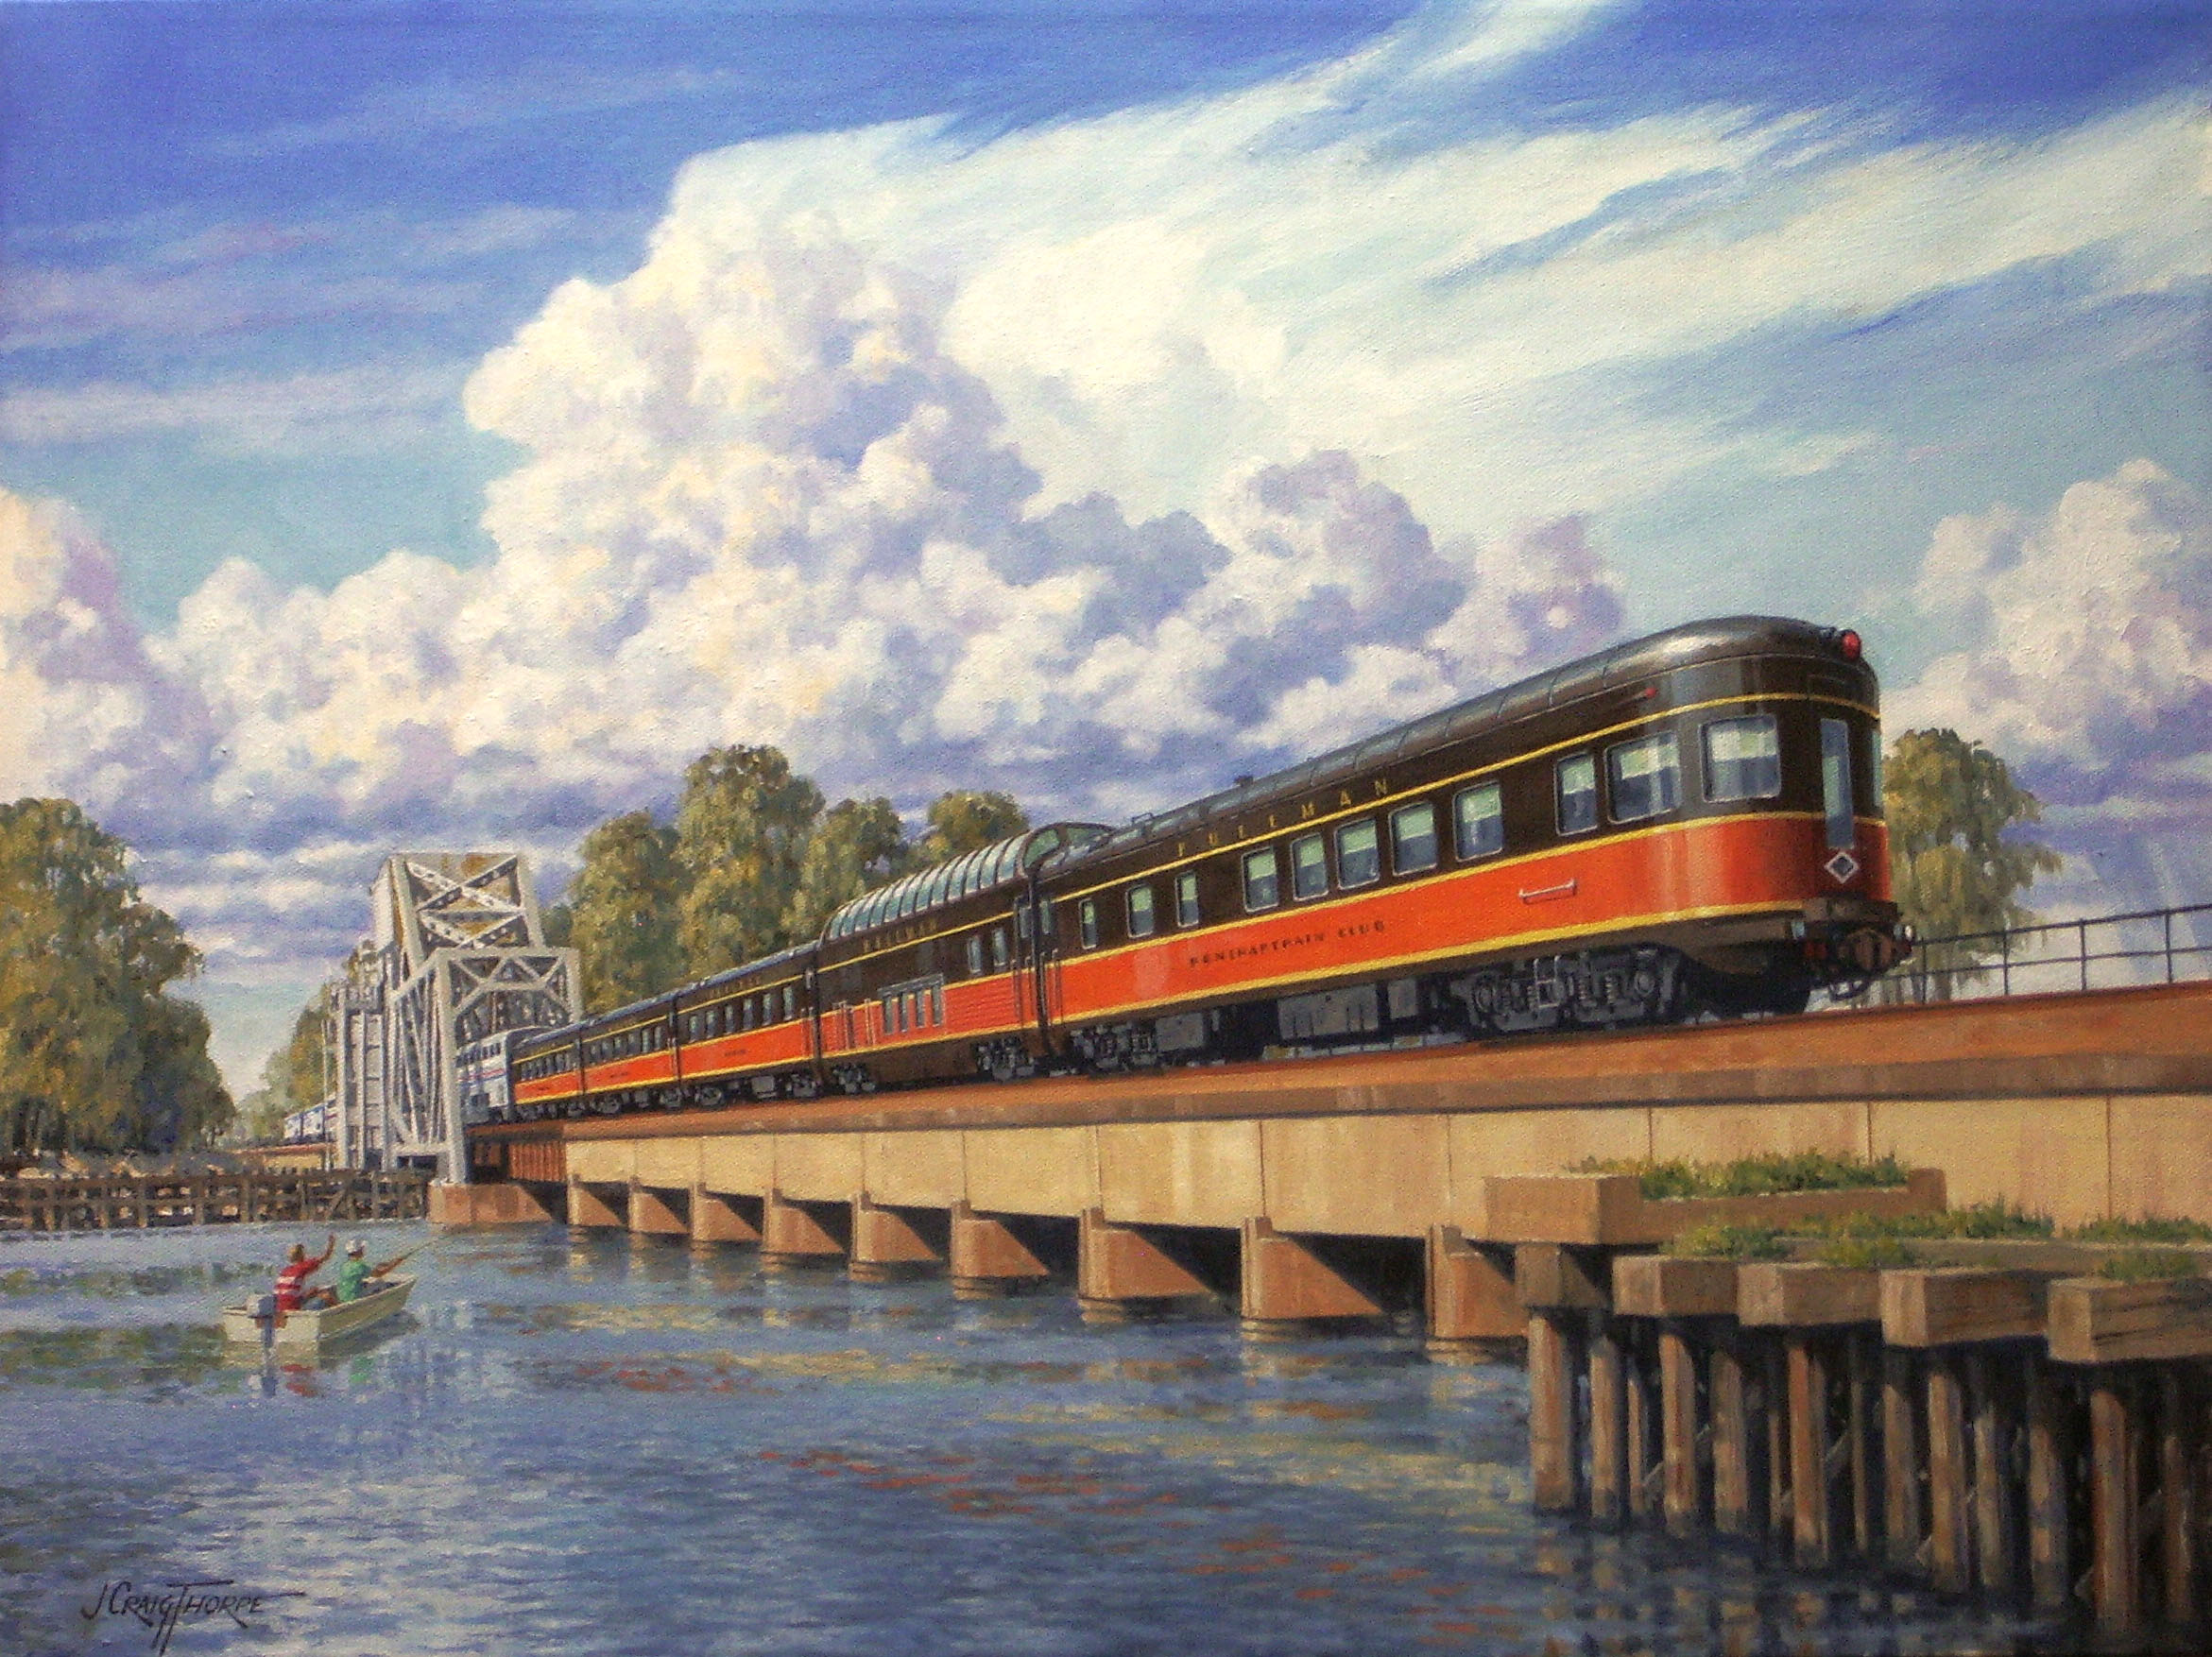 City of New Orleans, by J. Craig Thorpe